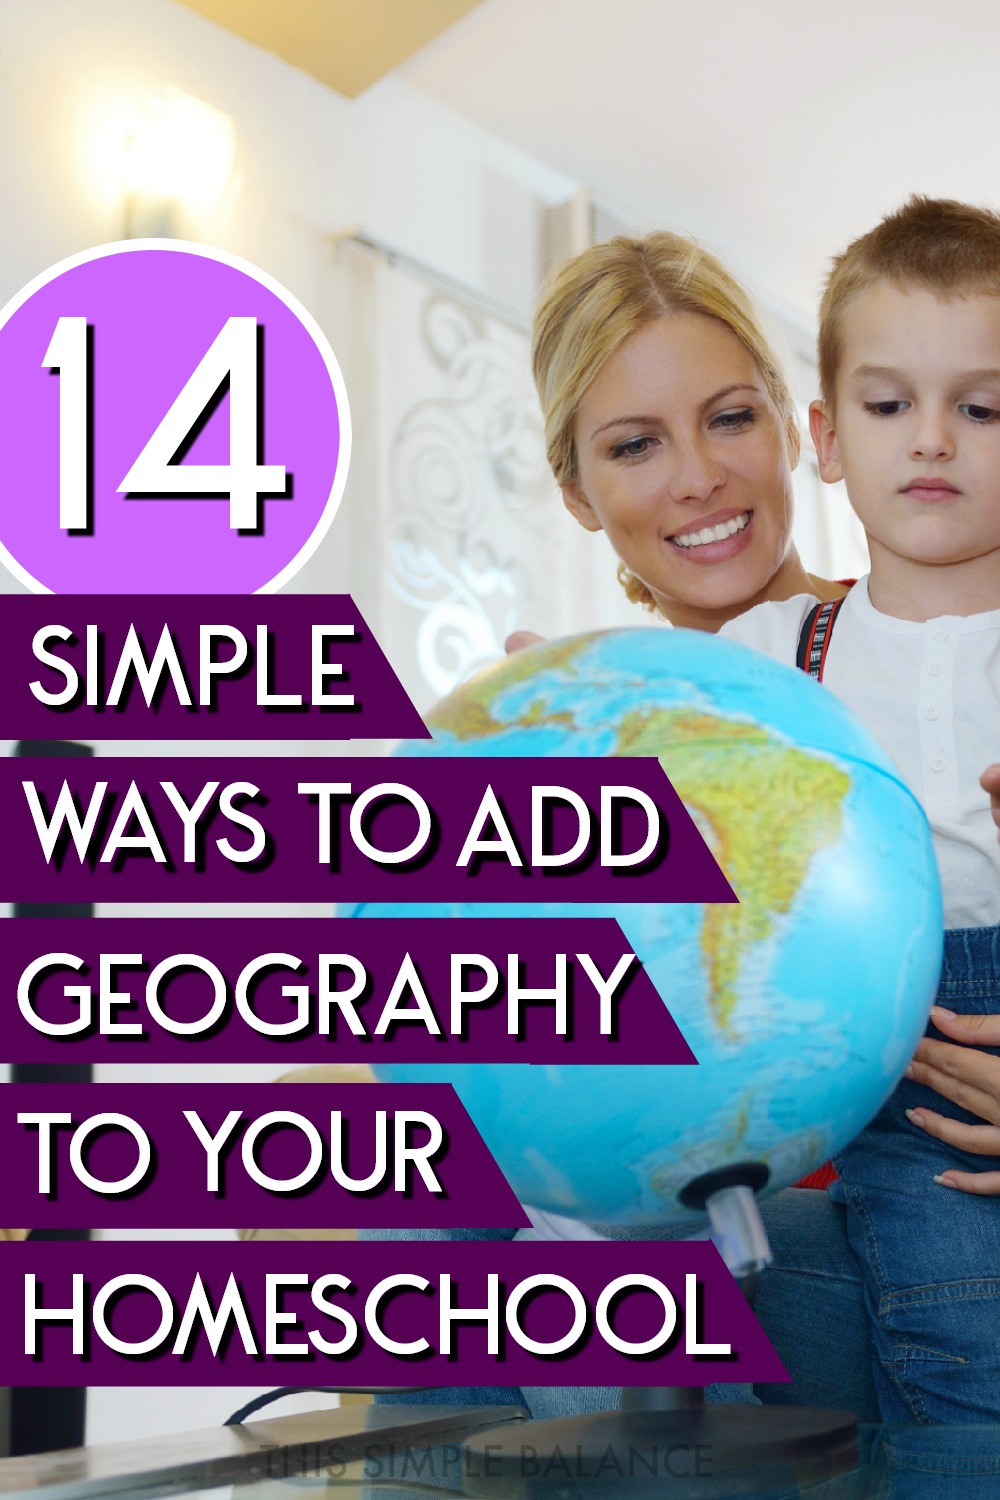 Homeschool geography can be super simple. Get 14 easy ways to teach geography in your homeschool without a curriculum. #homeschooltips #simplehomeschool